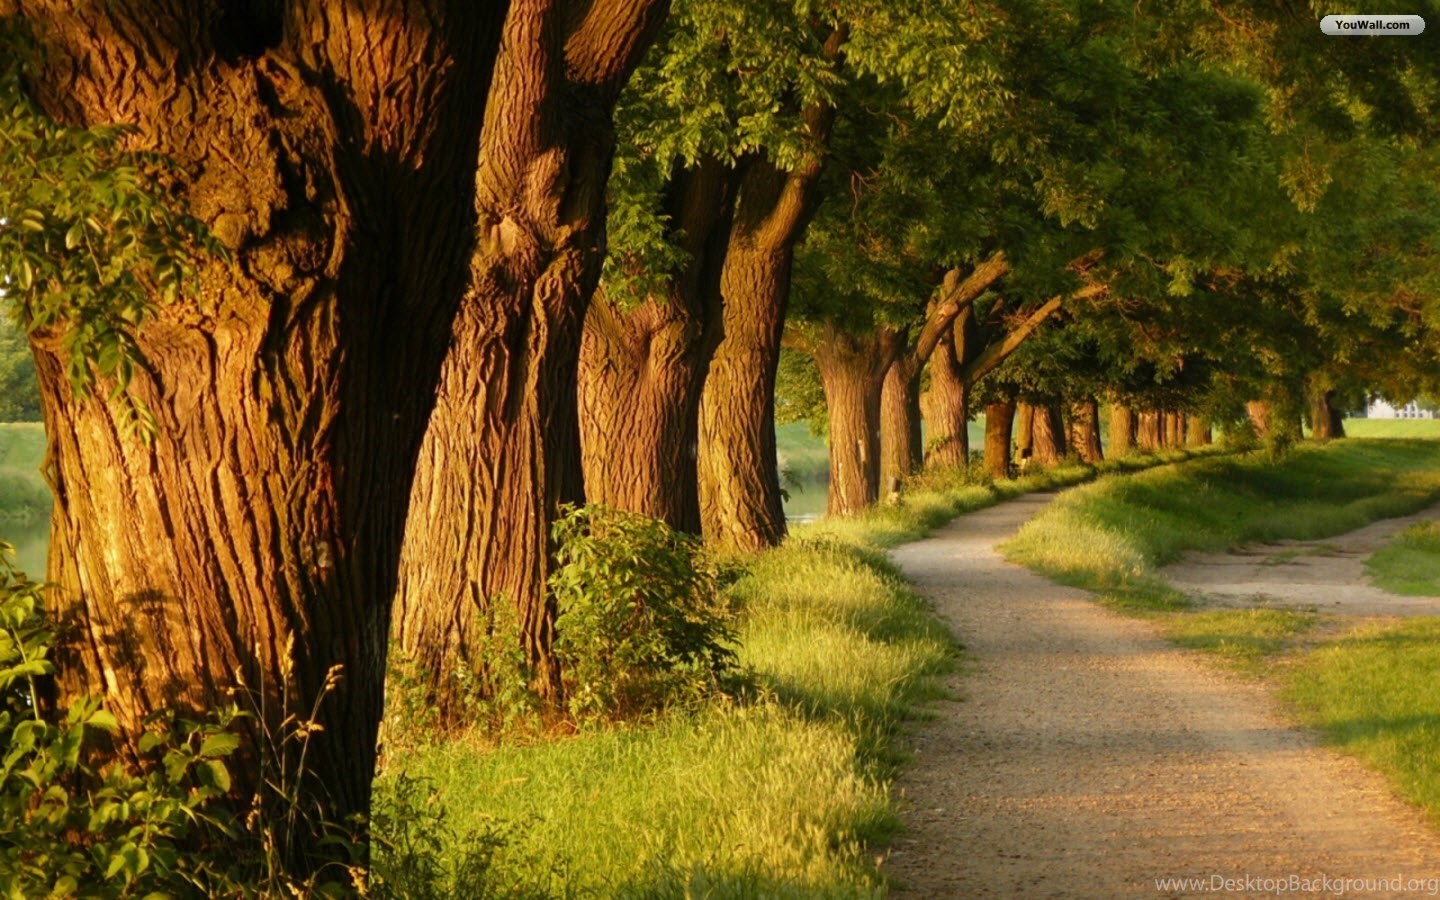 youwall big trees path wallpapers wallpaper,wallpapers,free